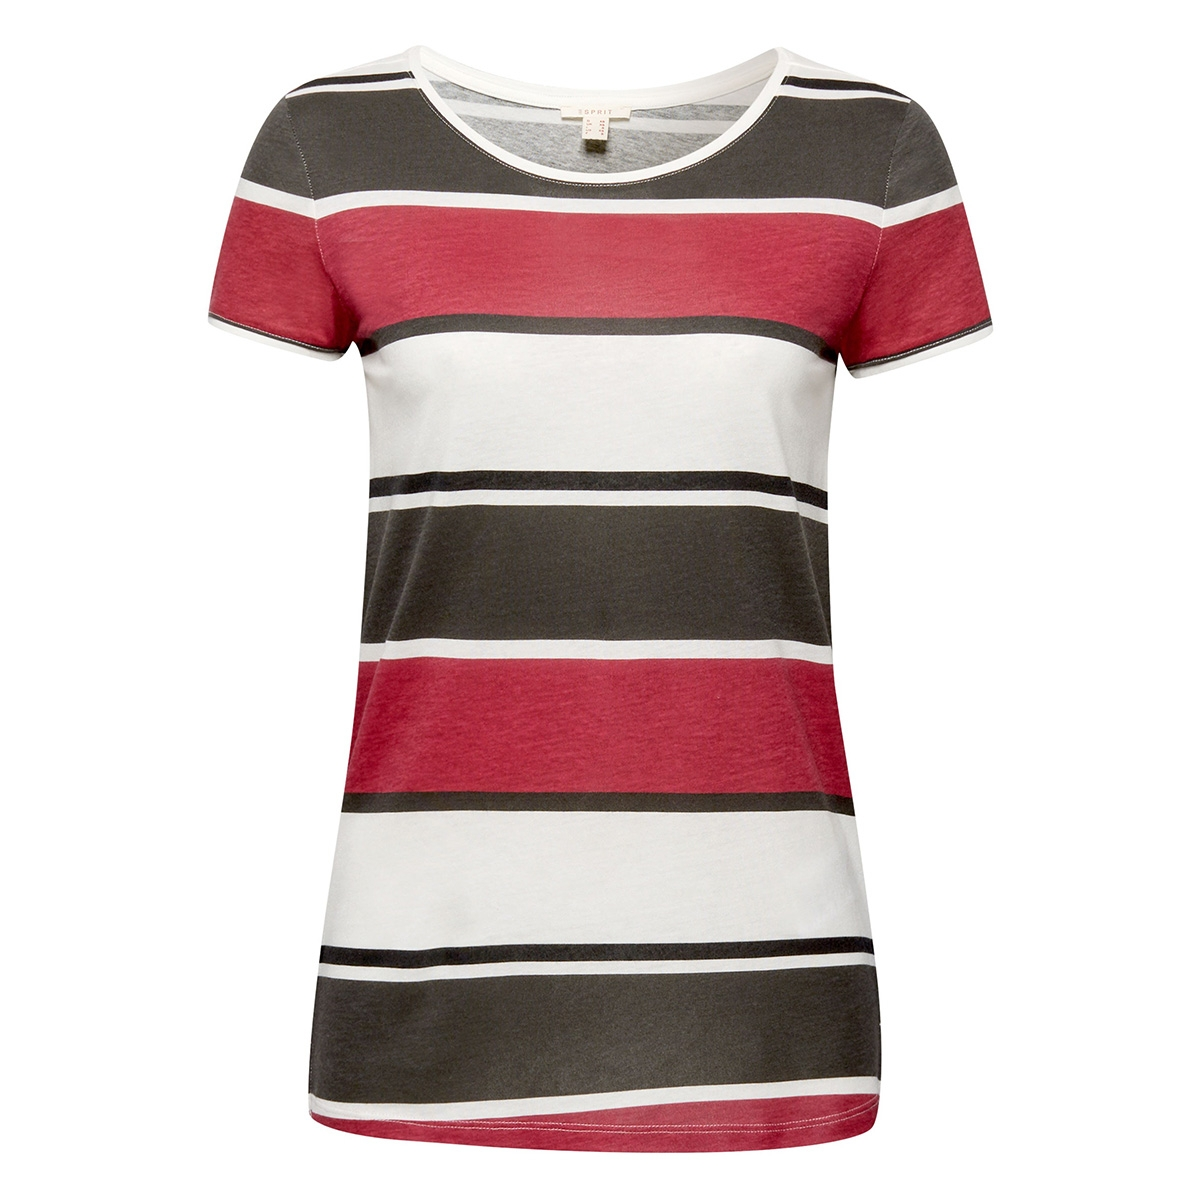 t shirt met all over print 079ee1k025 esprit t-shirt e110 off white colourway